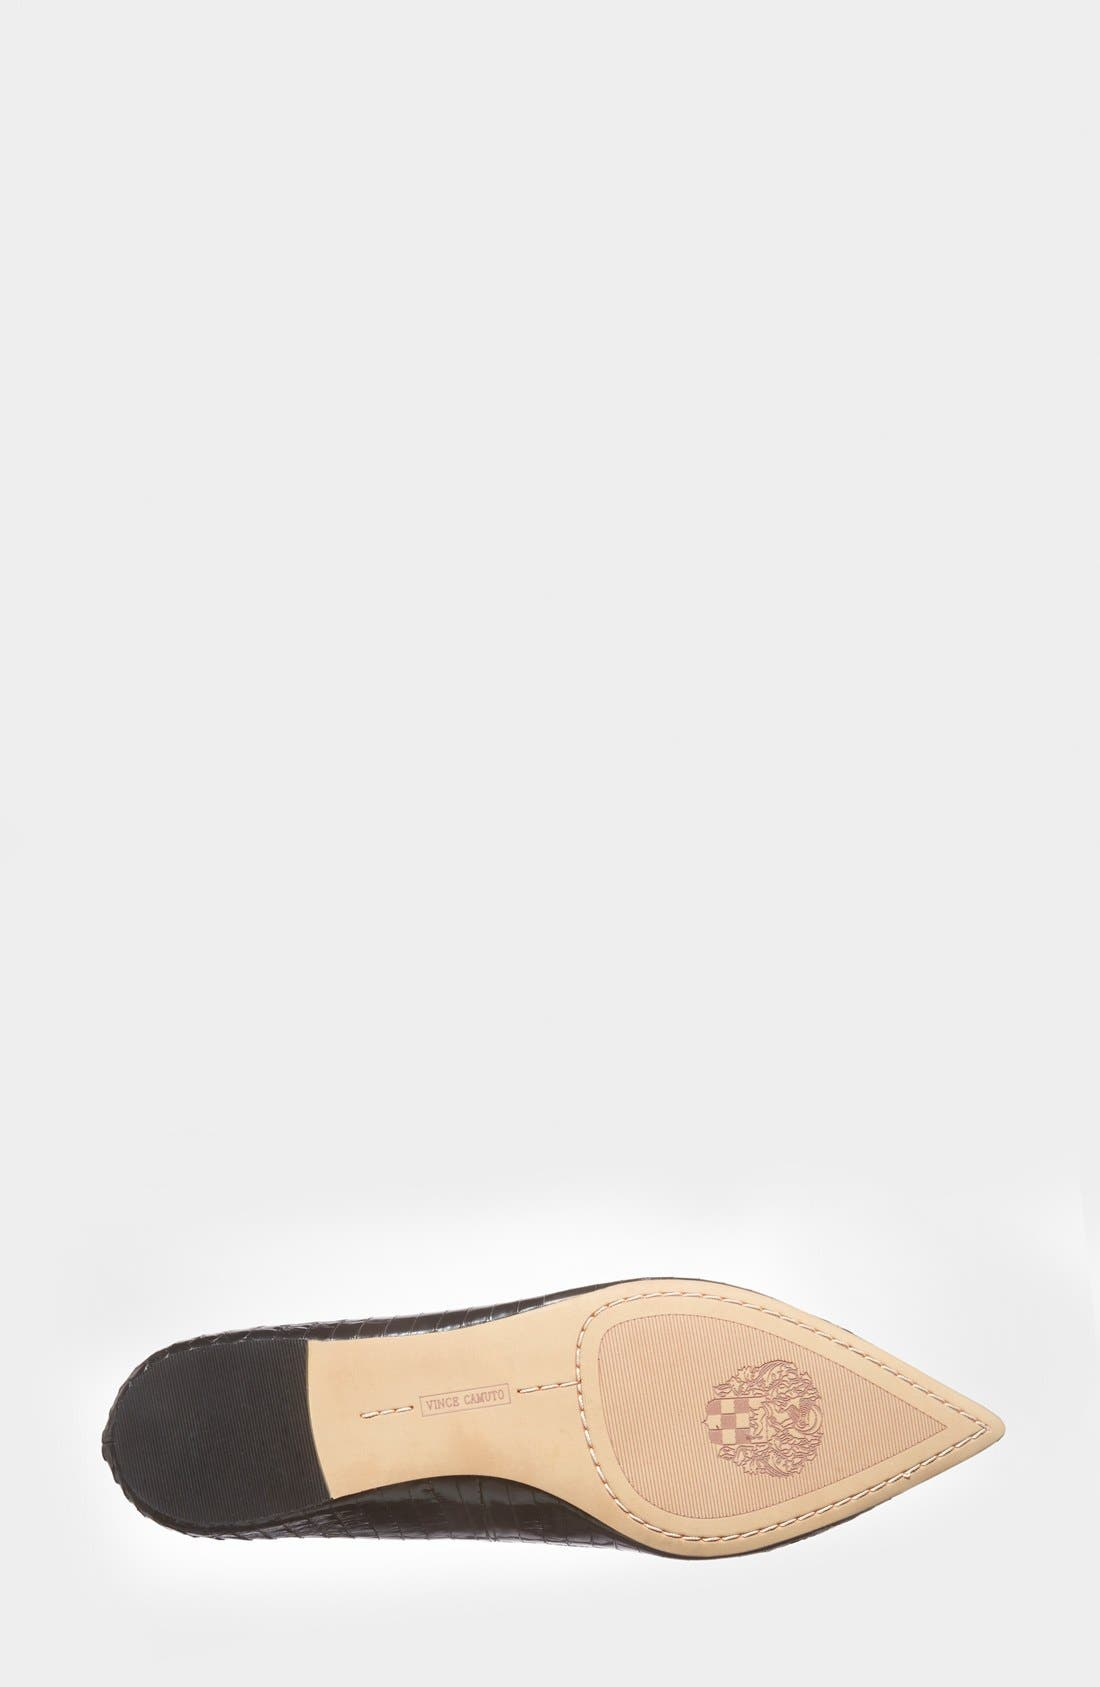 'Empa' Pointy Toe Loafer Flat,                             Alternate thumbnail 2, color,                             001